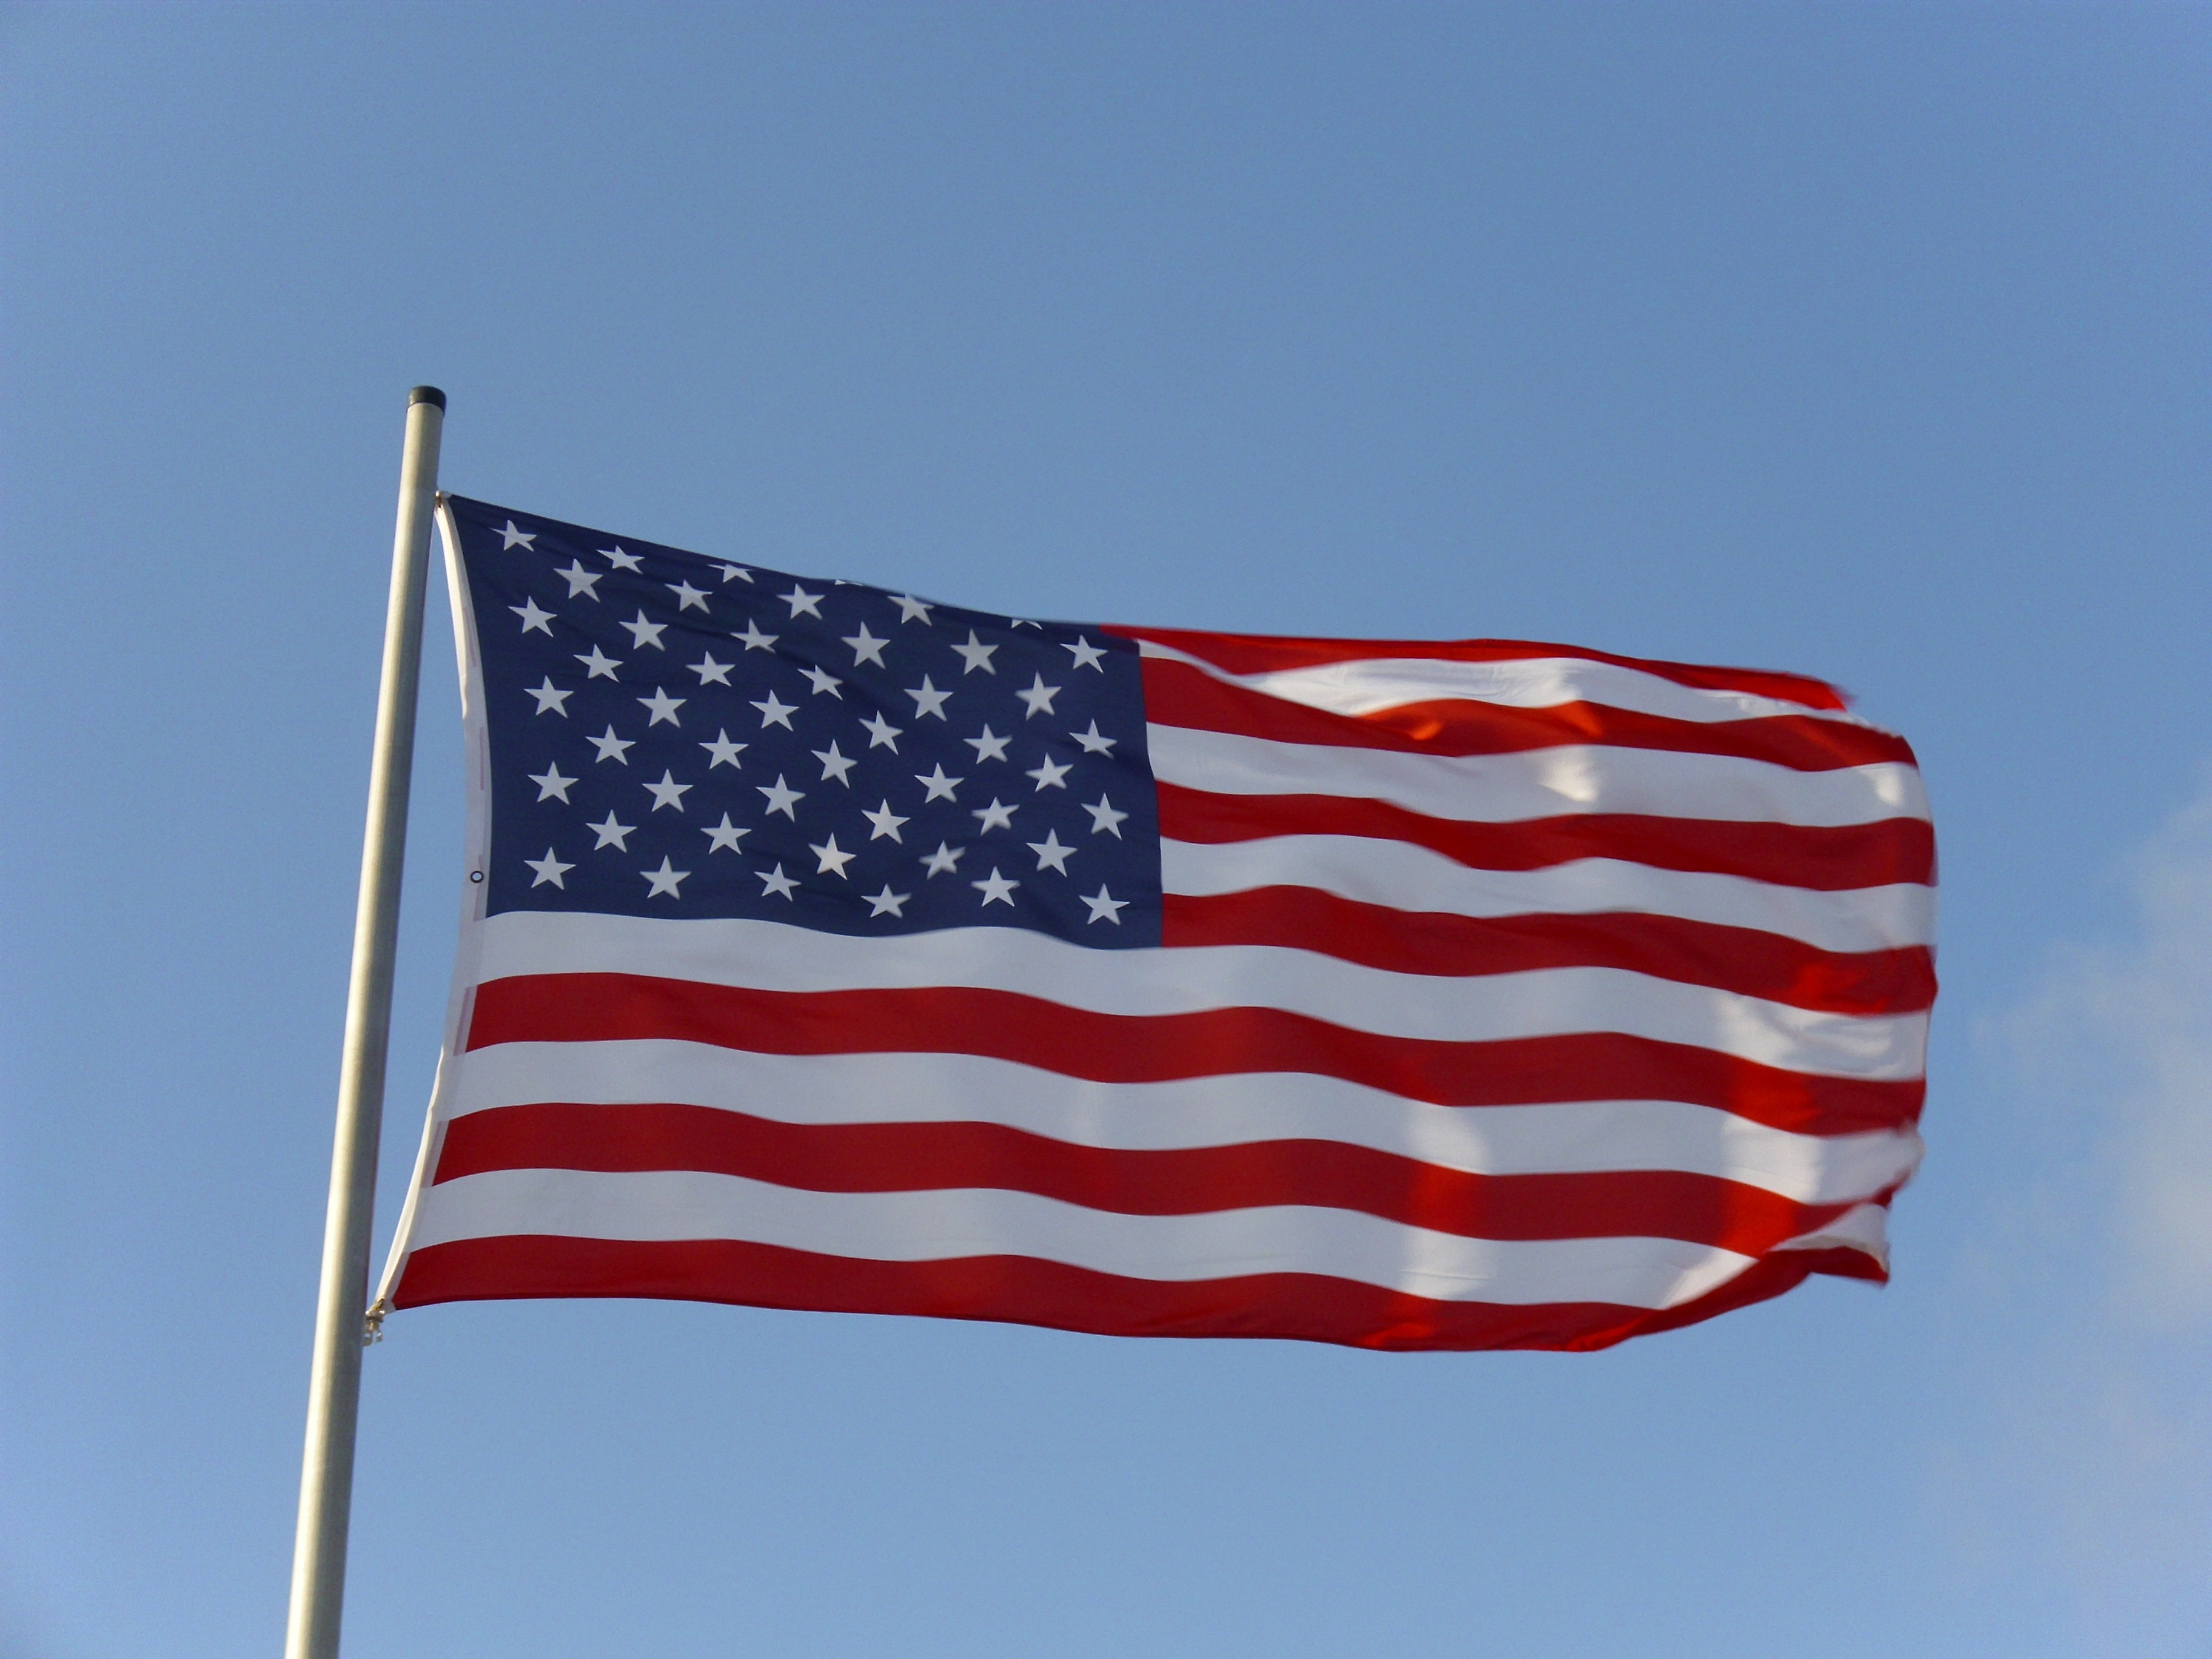 what do the 50 stars on the american flag represent